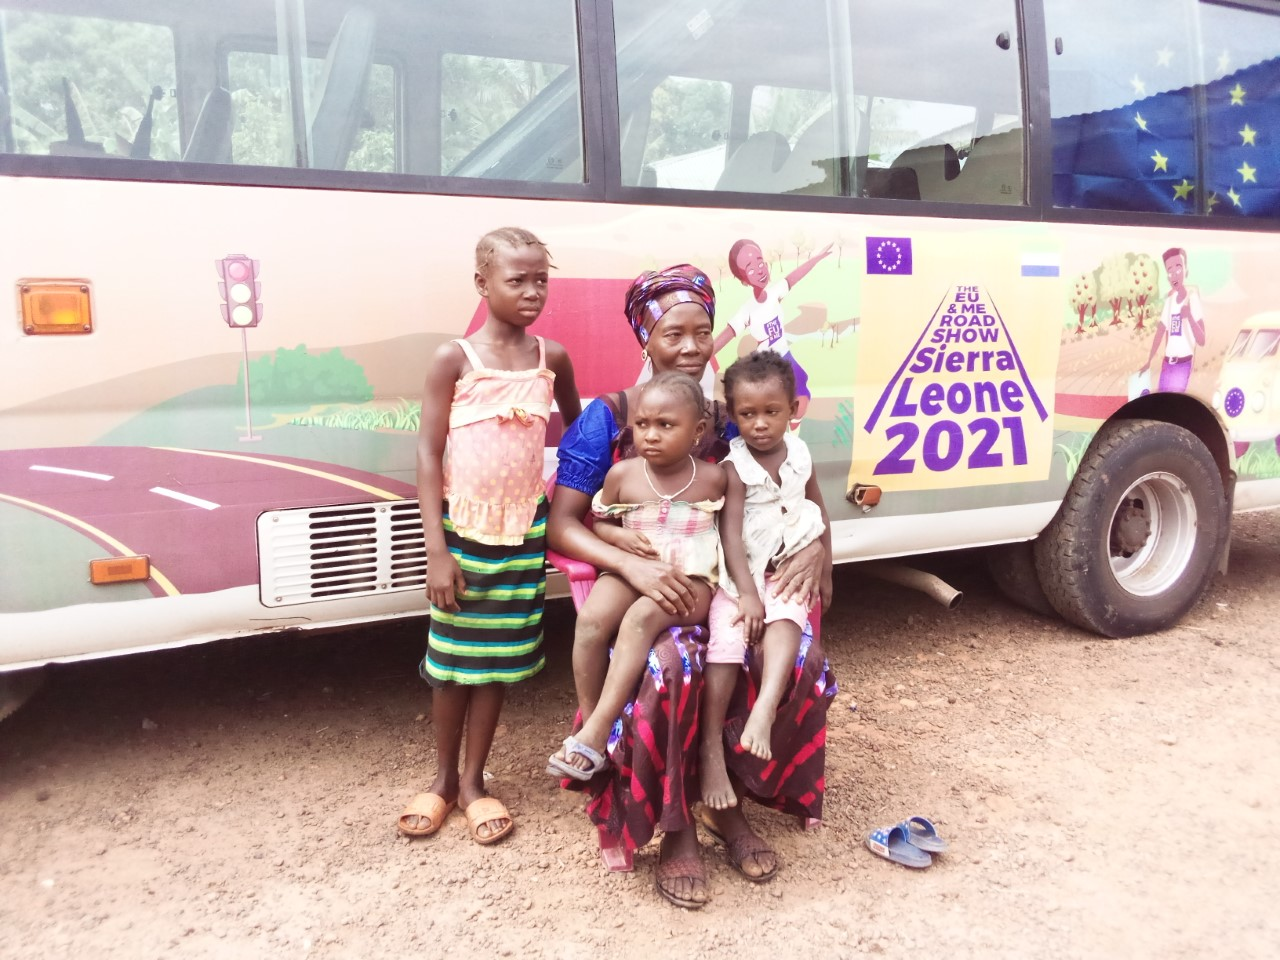 Deputy leader Aminata Kamara, pictured with her three daughters, has become a role model for the women of Konta Bana in Sierra Leone Photo Credit: Trócaire